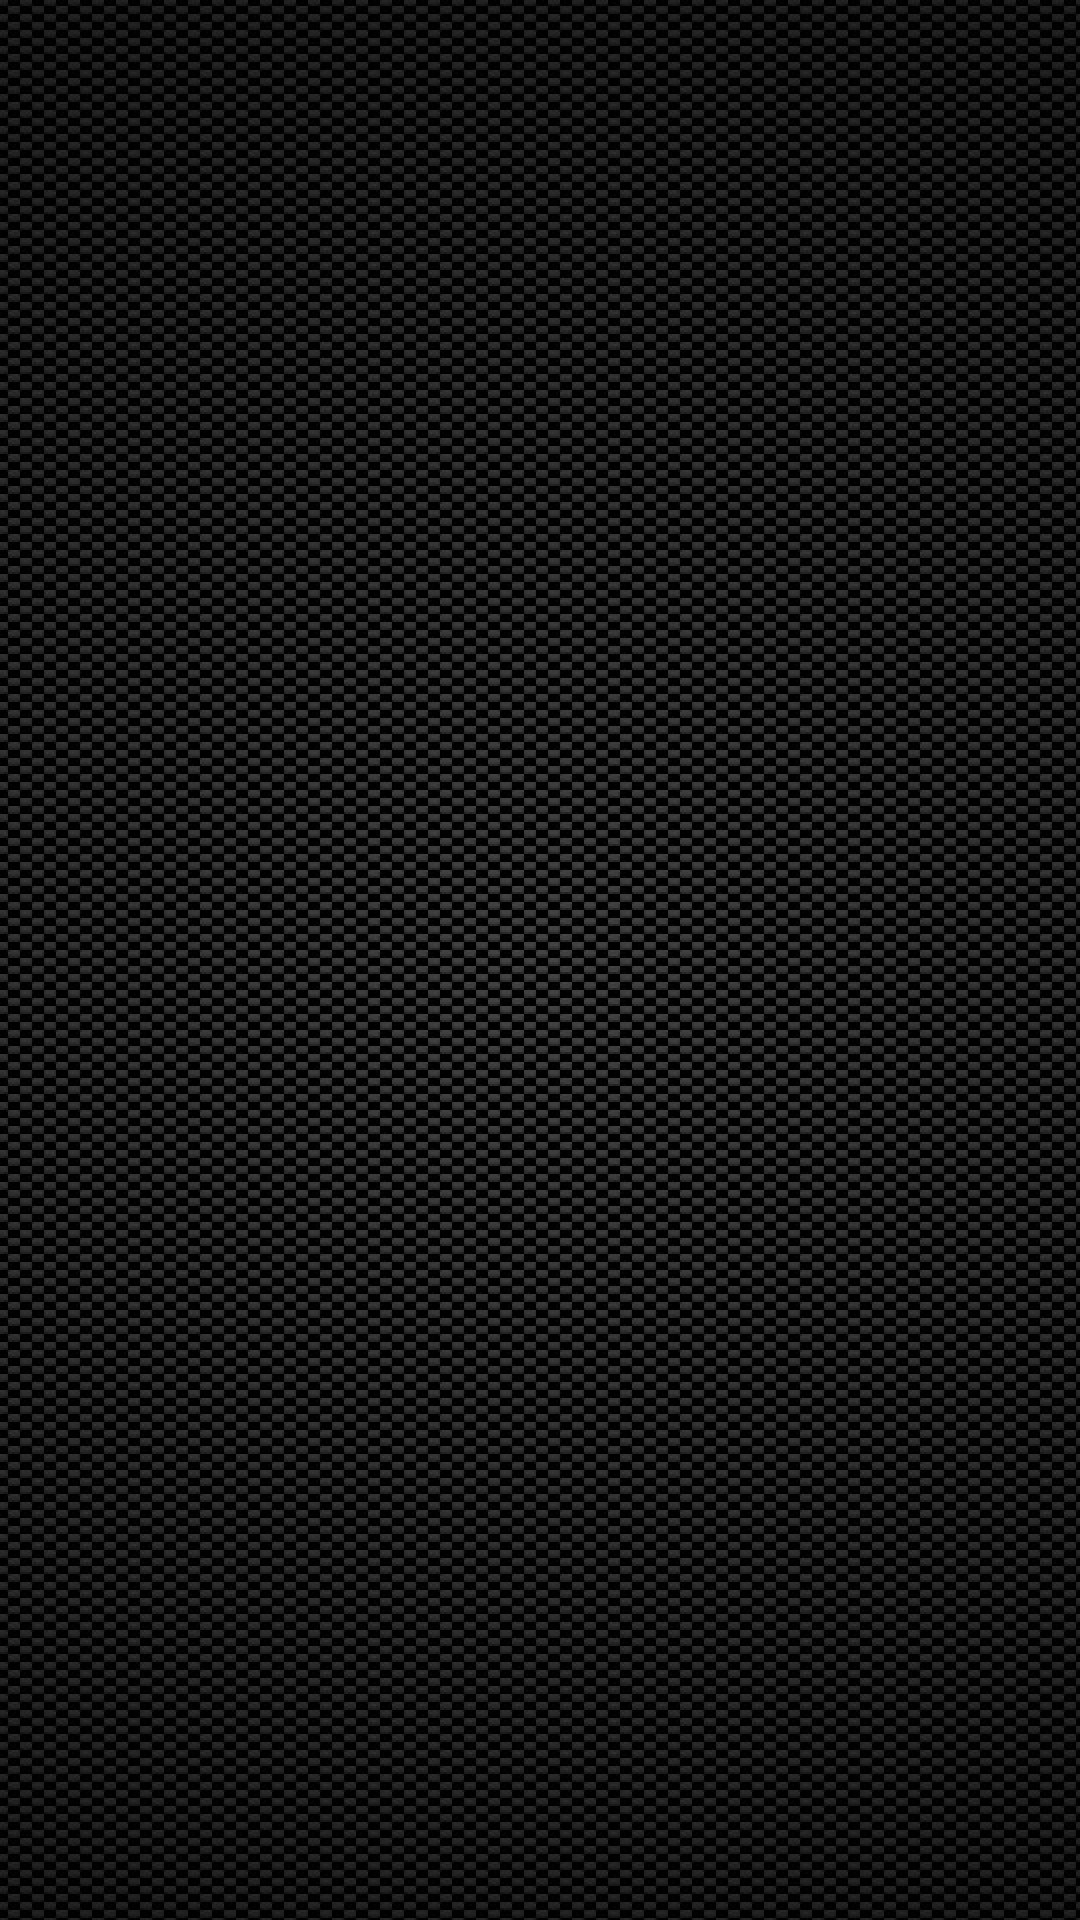 Black carbon fiber iphone 4 wallpaper iphone4 wallpapers org 1080x1920